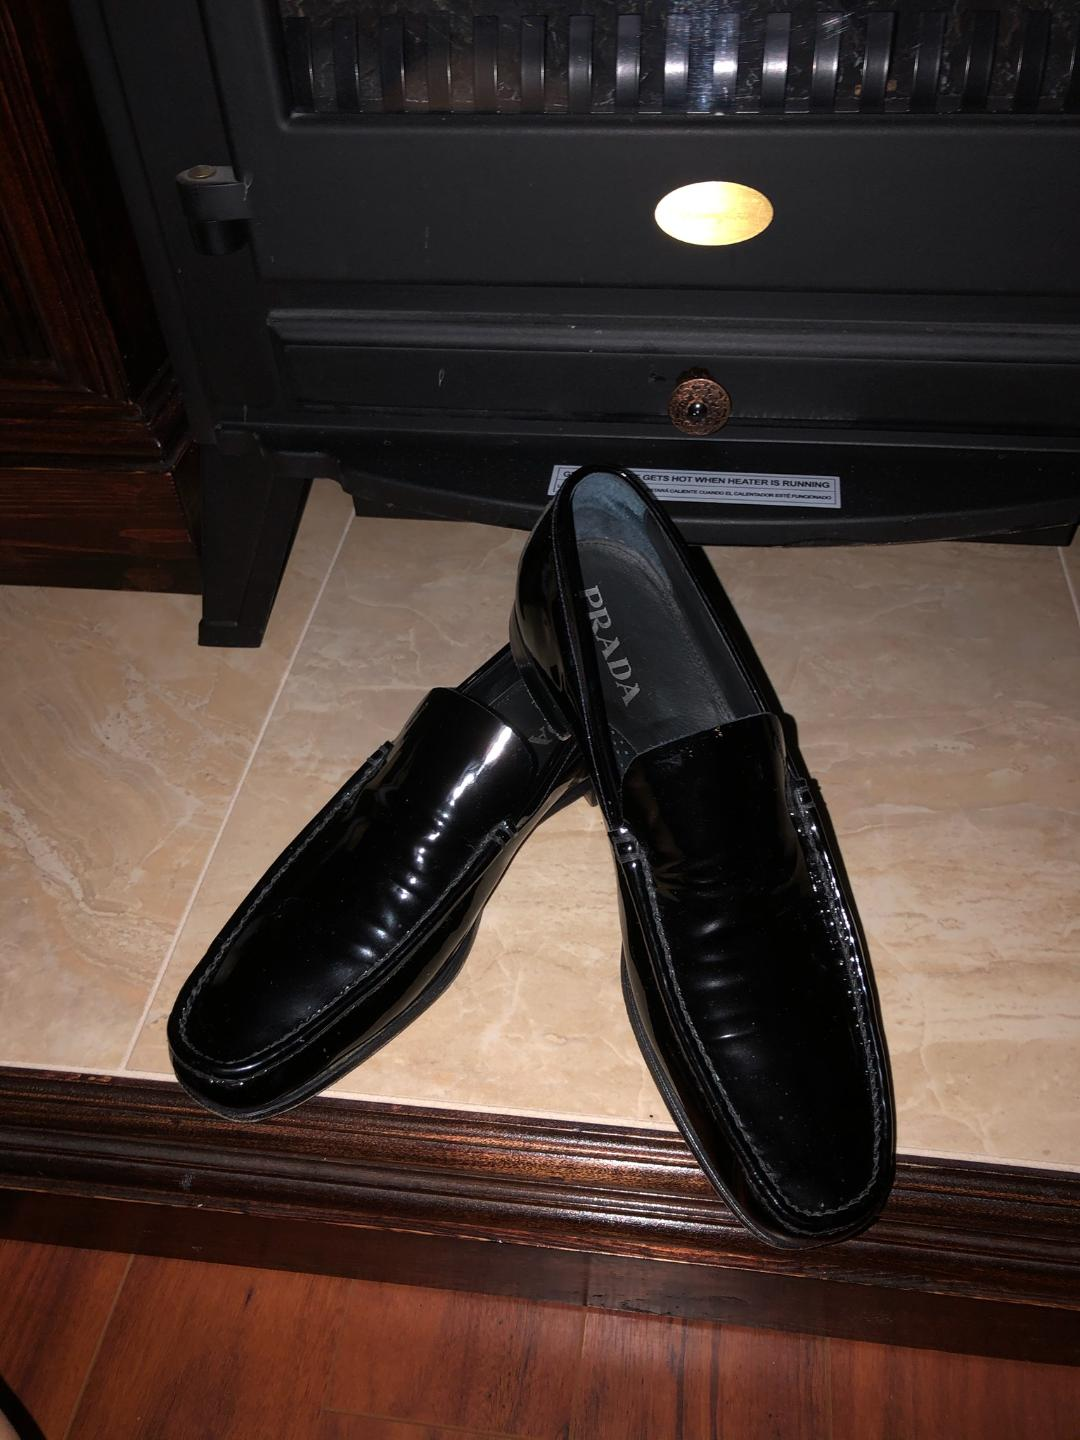 Prada Shoes size 11.5